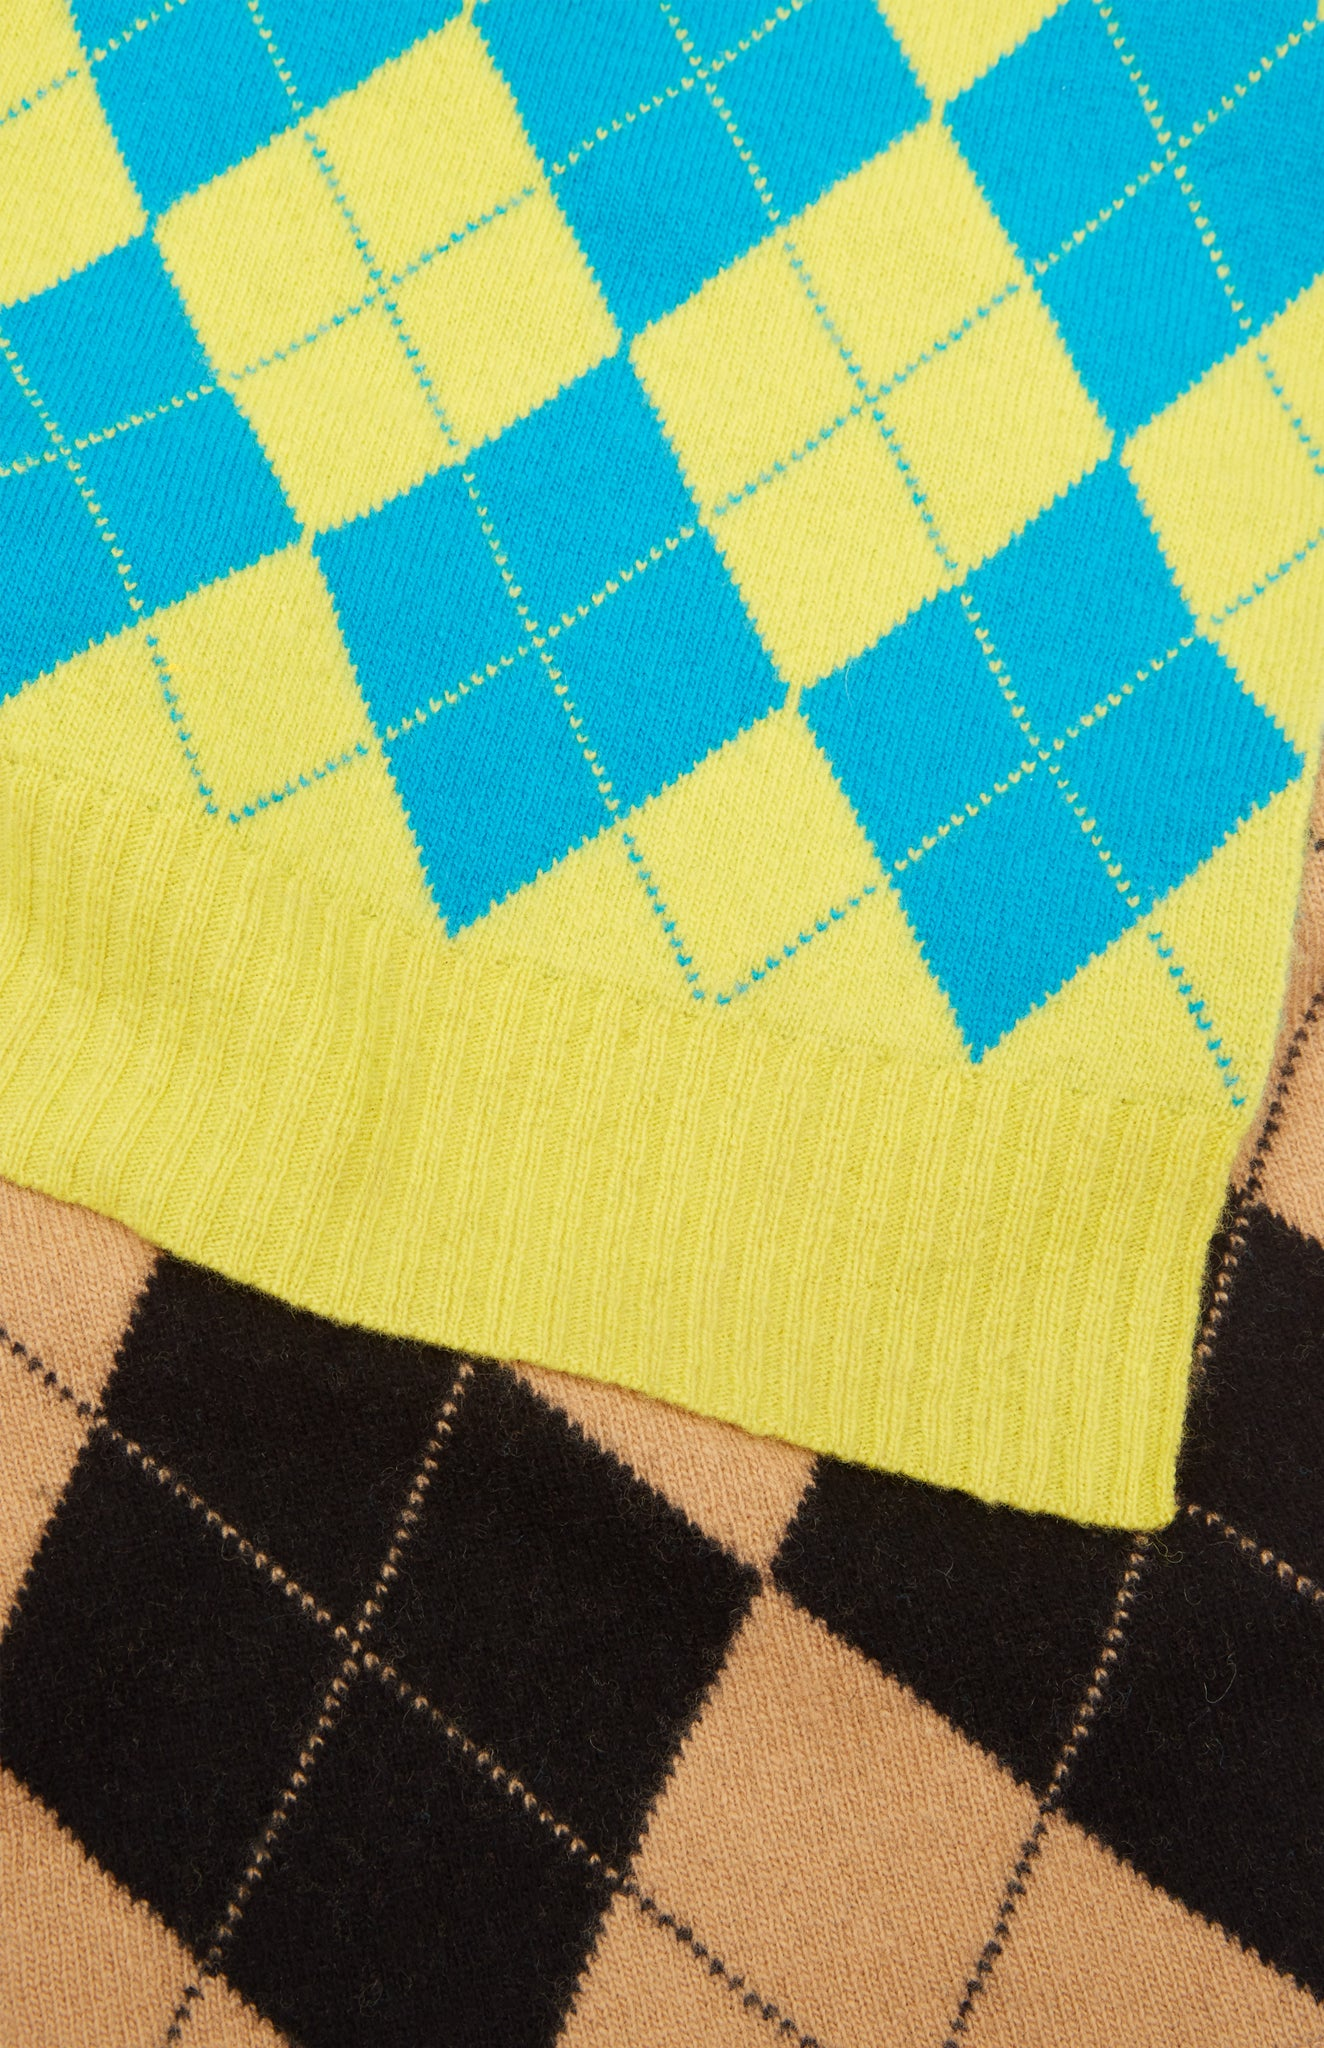 Pringle Reissued Patched Argyle Scarf